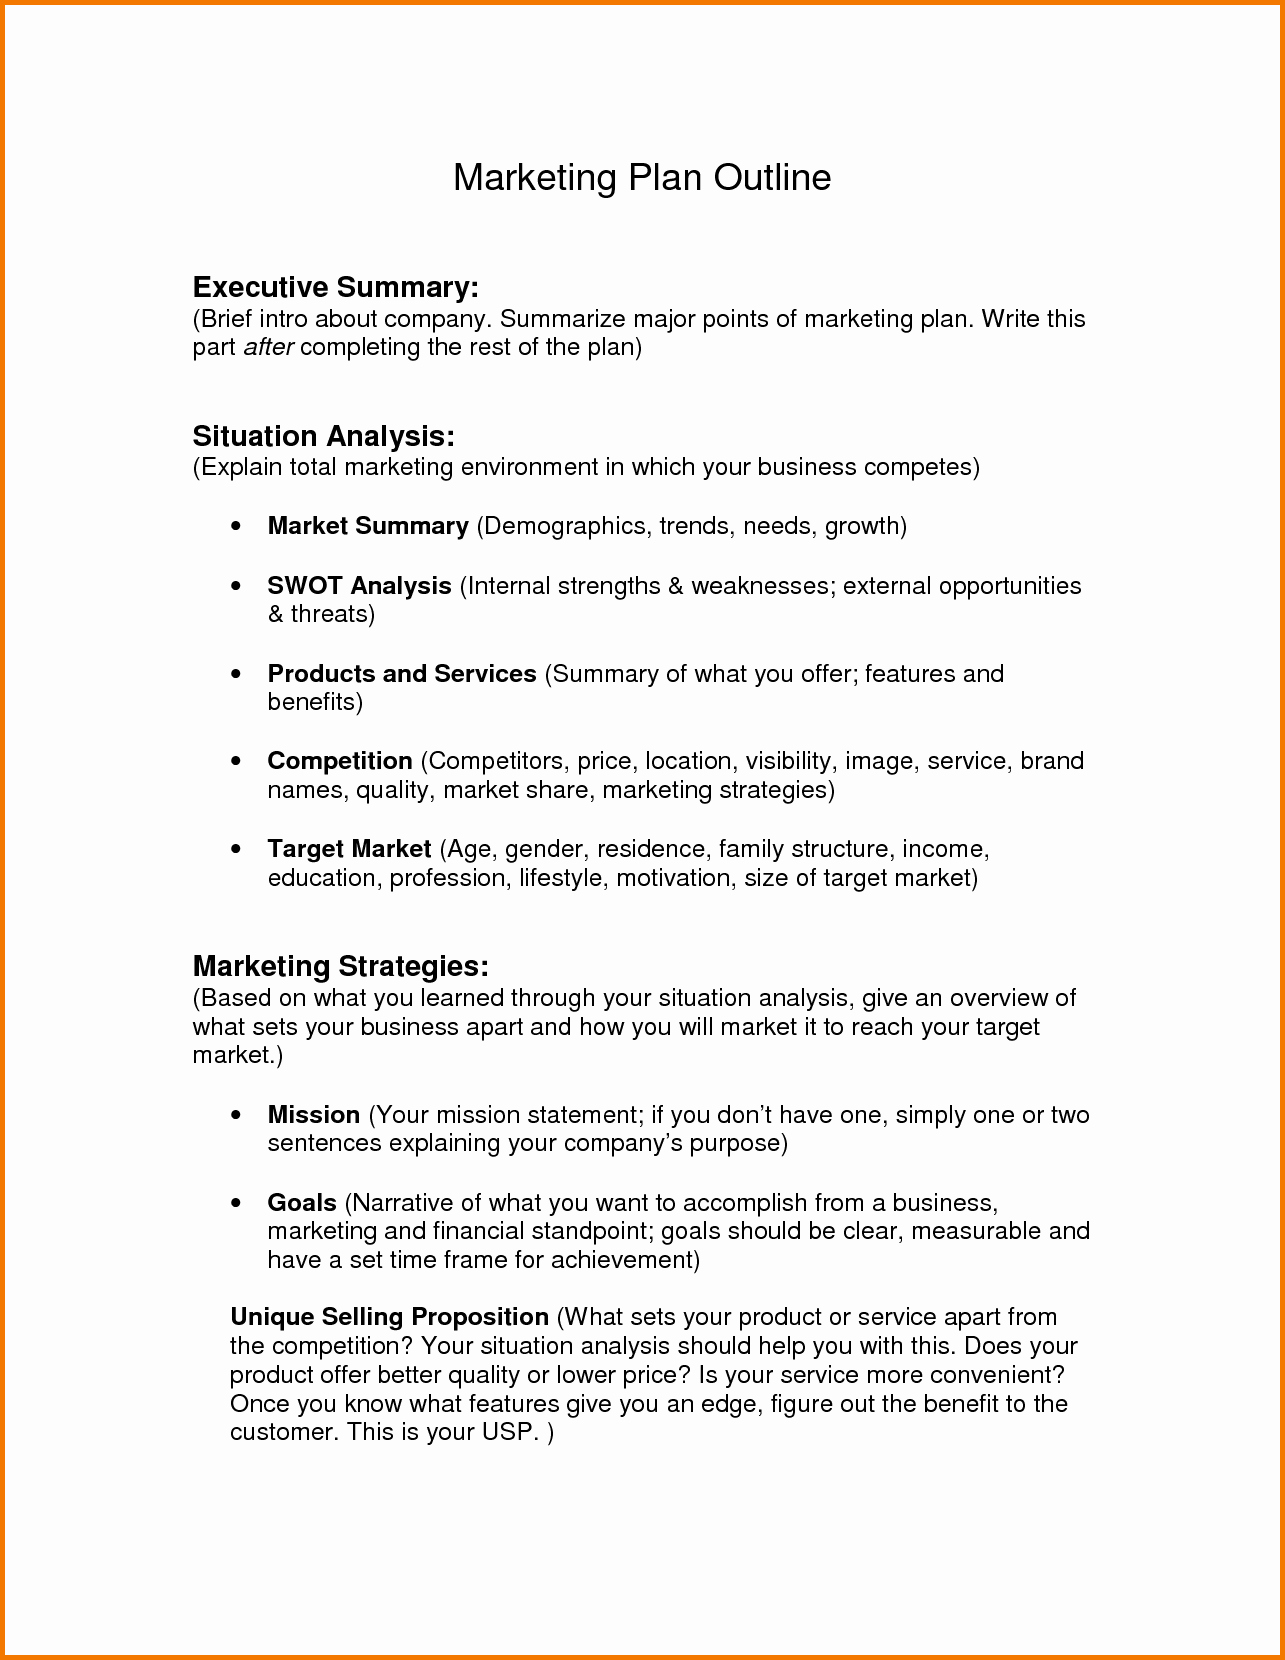 Marketing Plan Outline Template Luxury Build A Marketing Plan